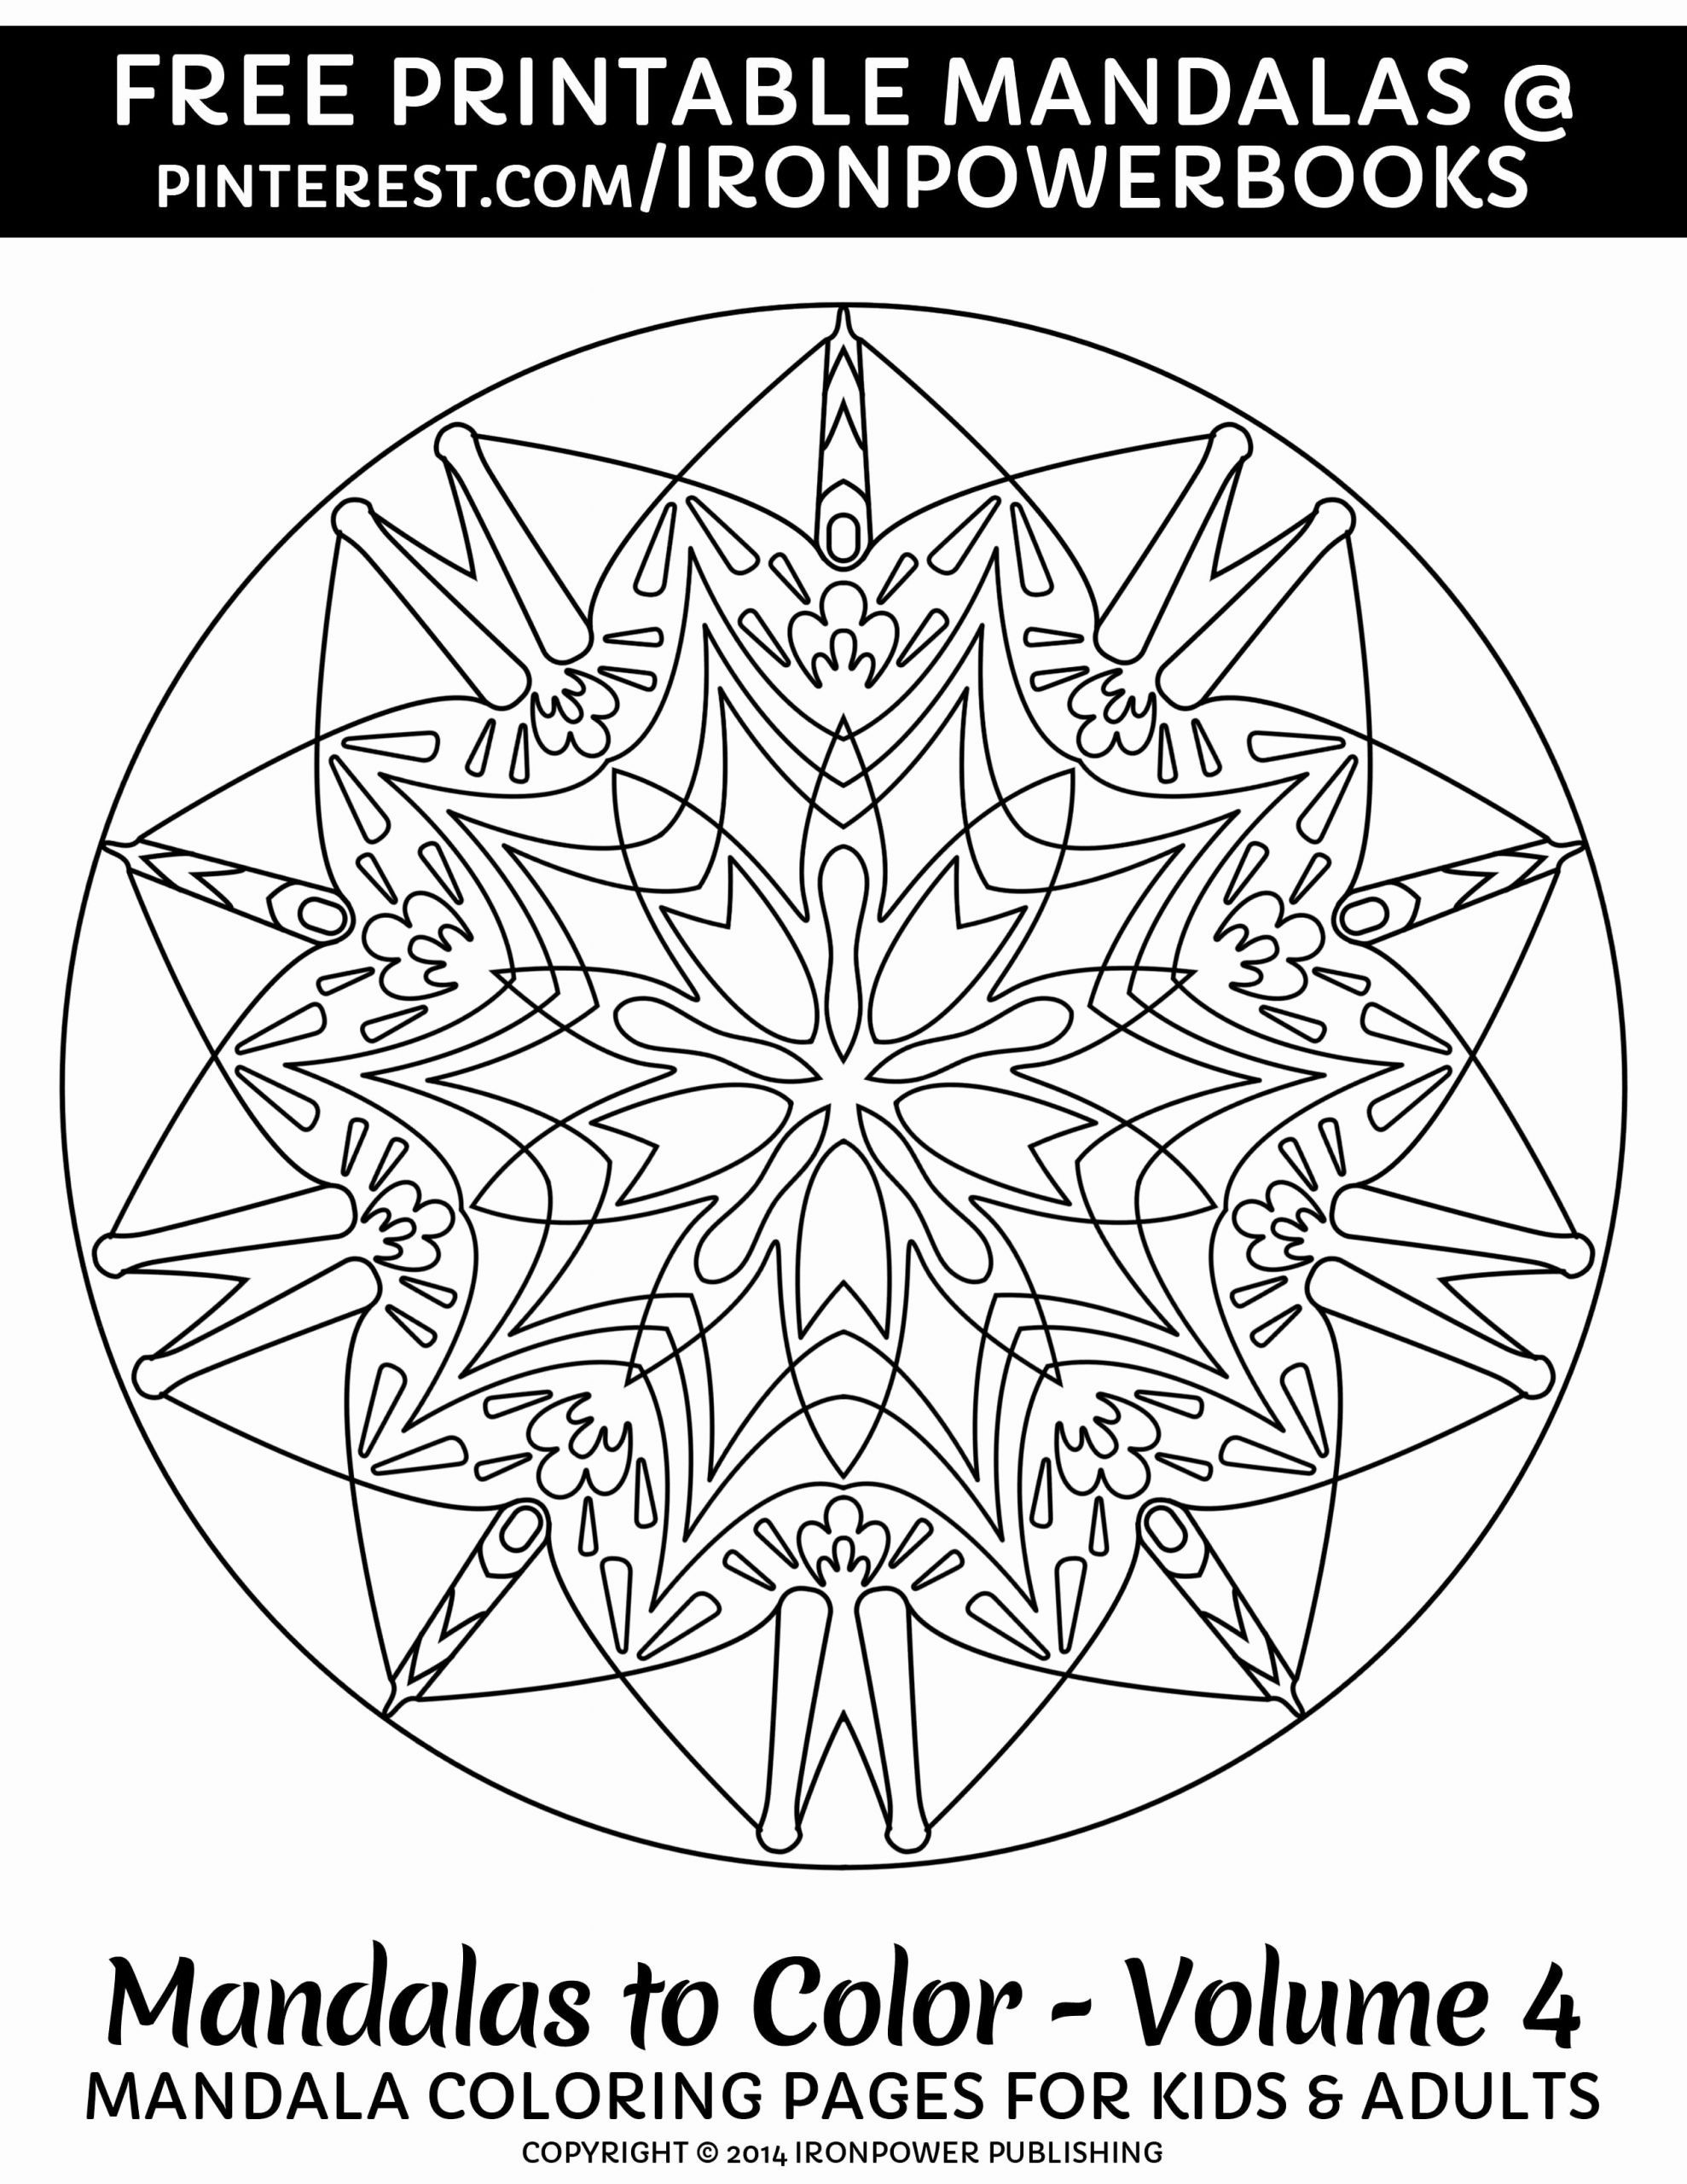 Create Your Own Mandala Coloring Page Elegant Free Printable Mandala Coloring Pages For St In 2020 Mandala Coloring Books Designs Coloring Books Mandala Coloring Pages